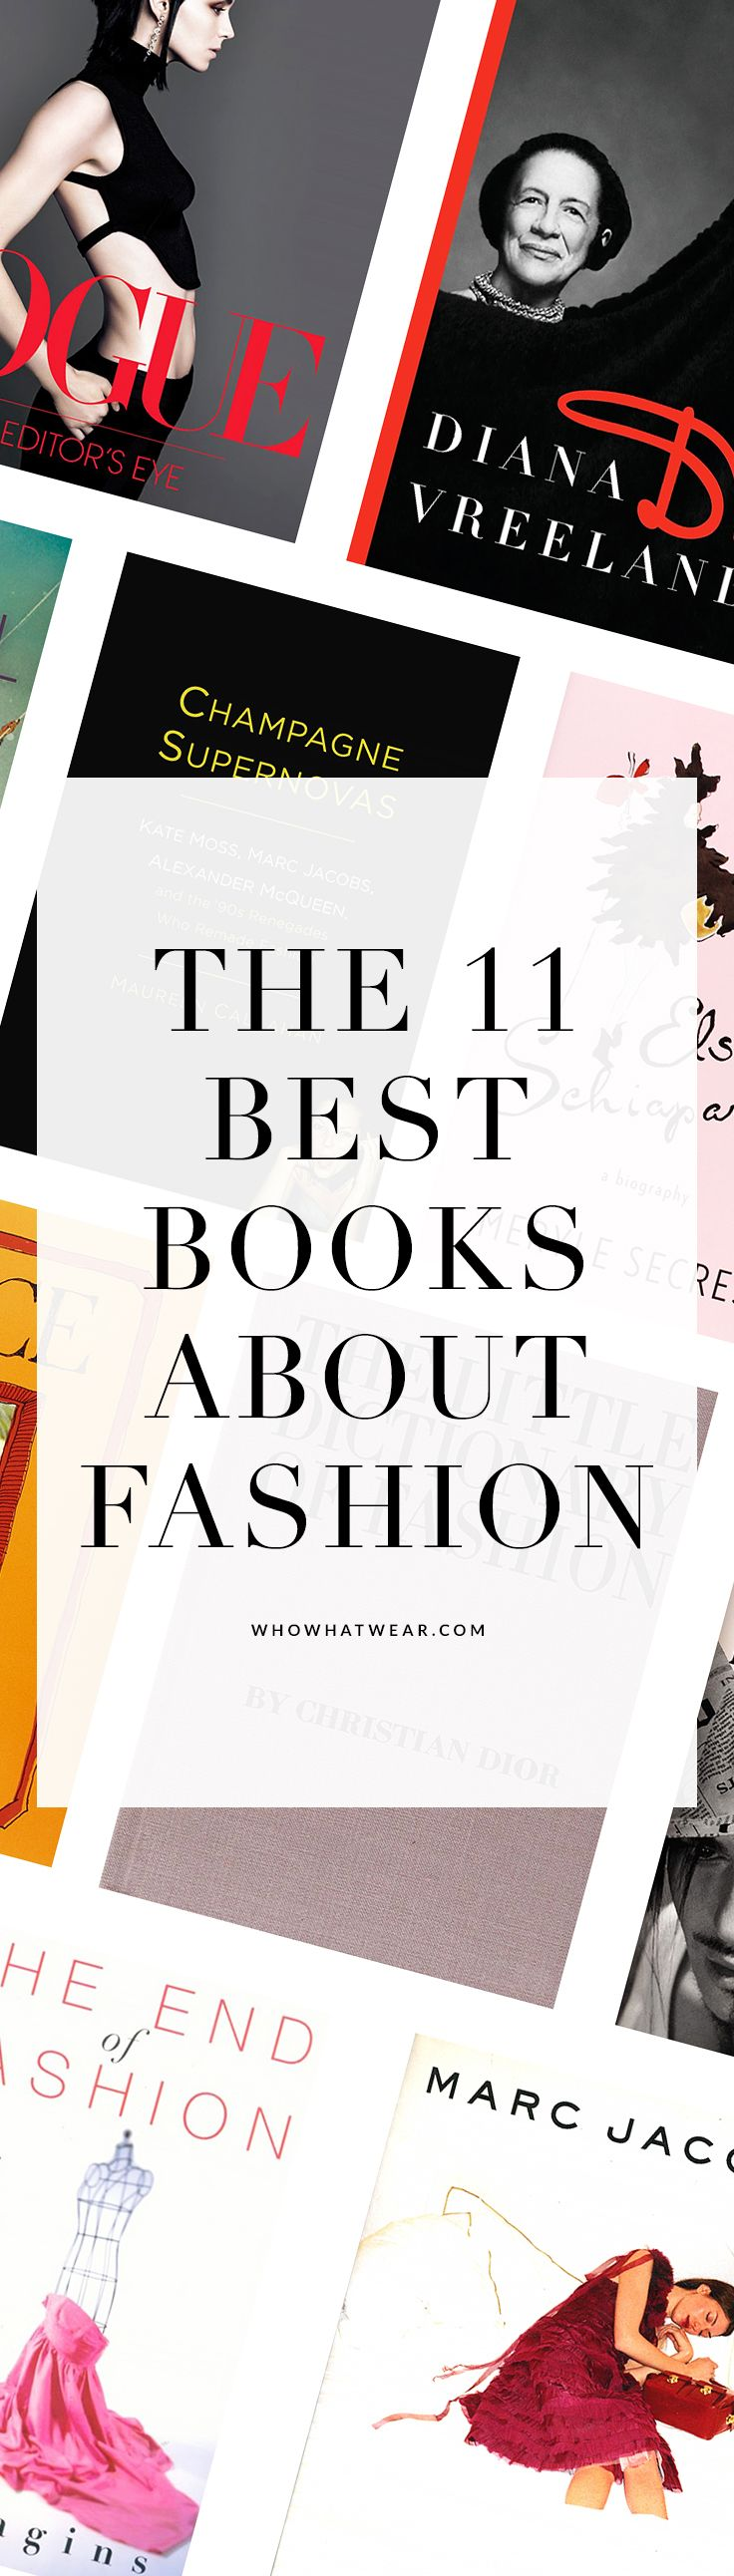 Shop: Fashion books